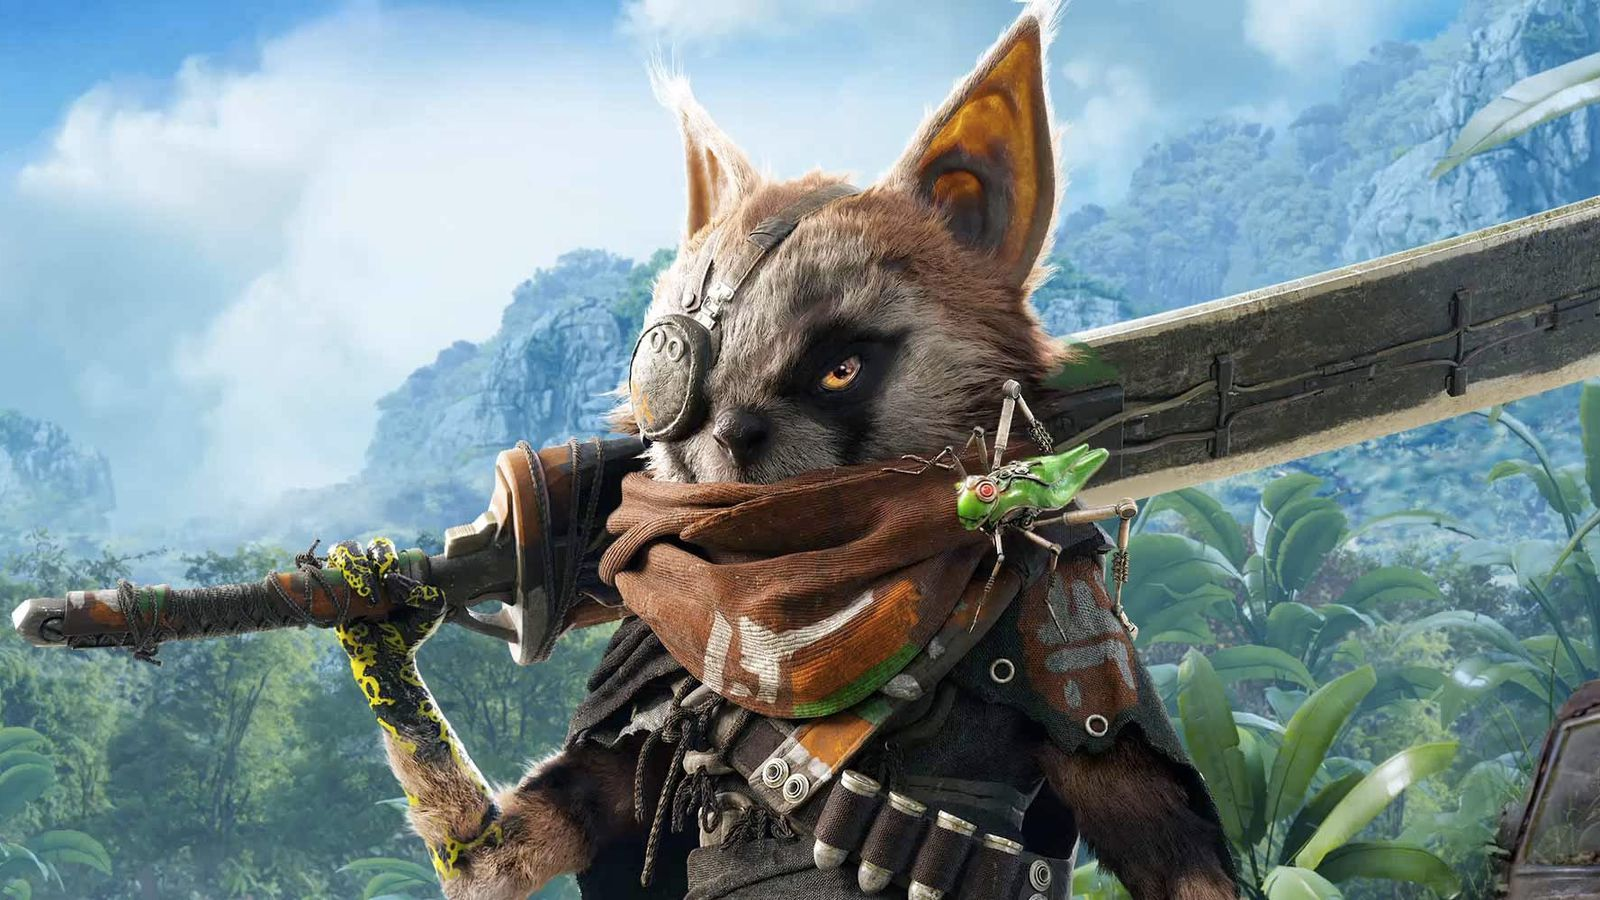 BioMutant Is A Furry Kung Fu RPG From THQ Nordic